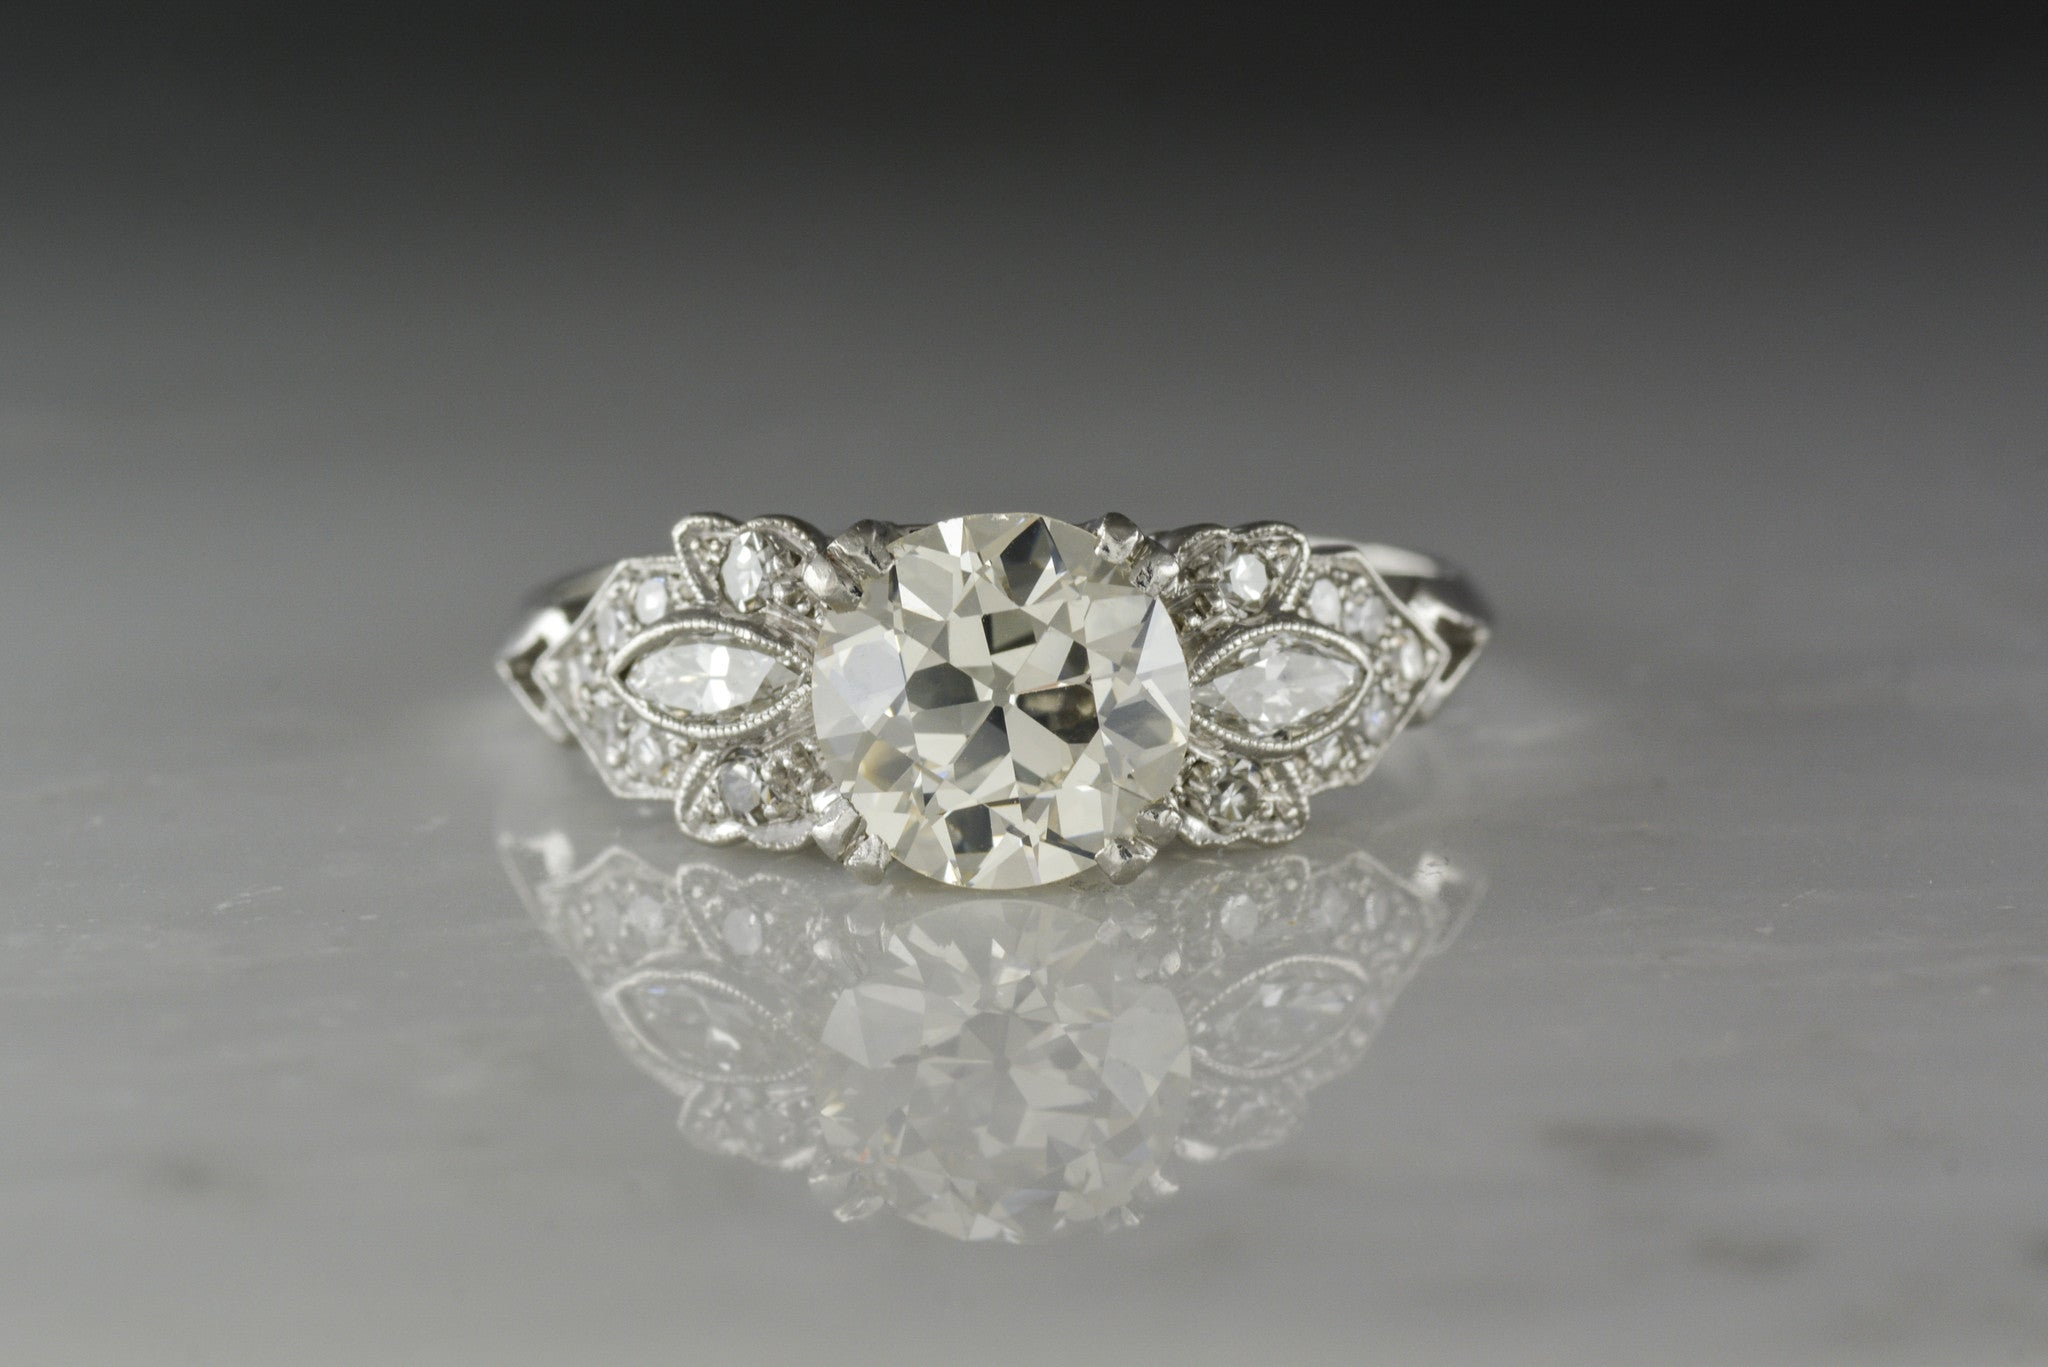 platinum rings antique cut ring engagement european in nouveau product diamond old art deco